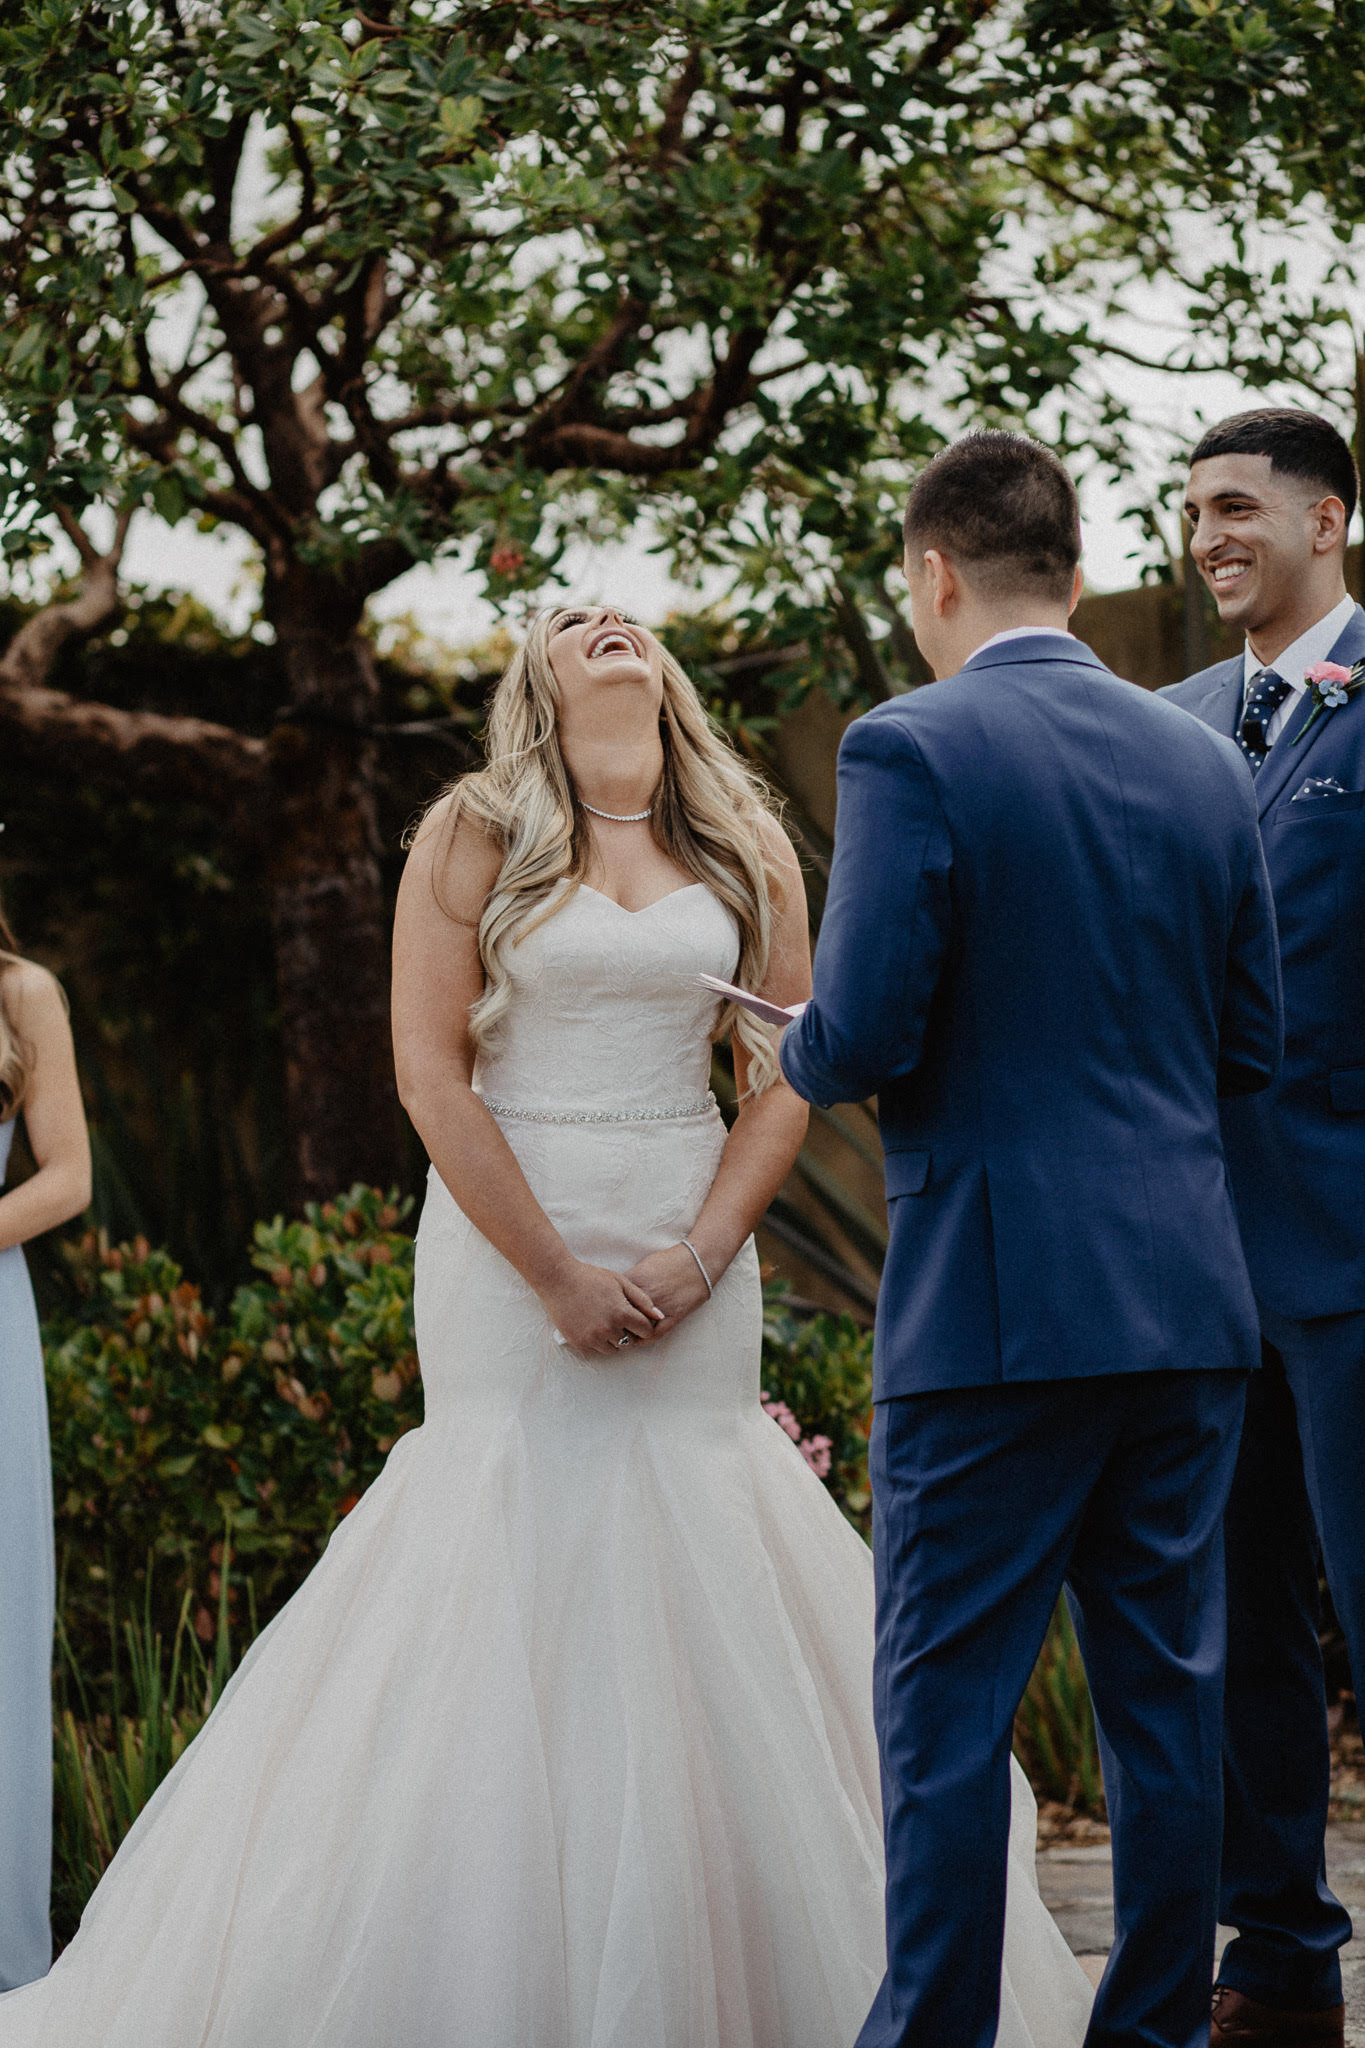 We were cracking up during our vows! I love that you can also see the pink in the layers of my dress, that was one of the main reasons I fell in love with this particular dress.